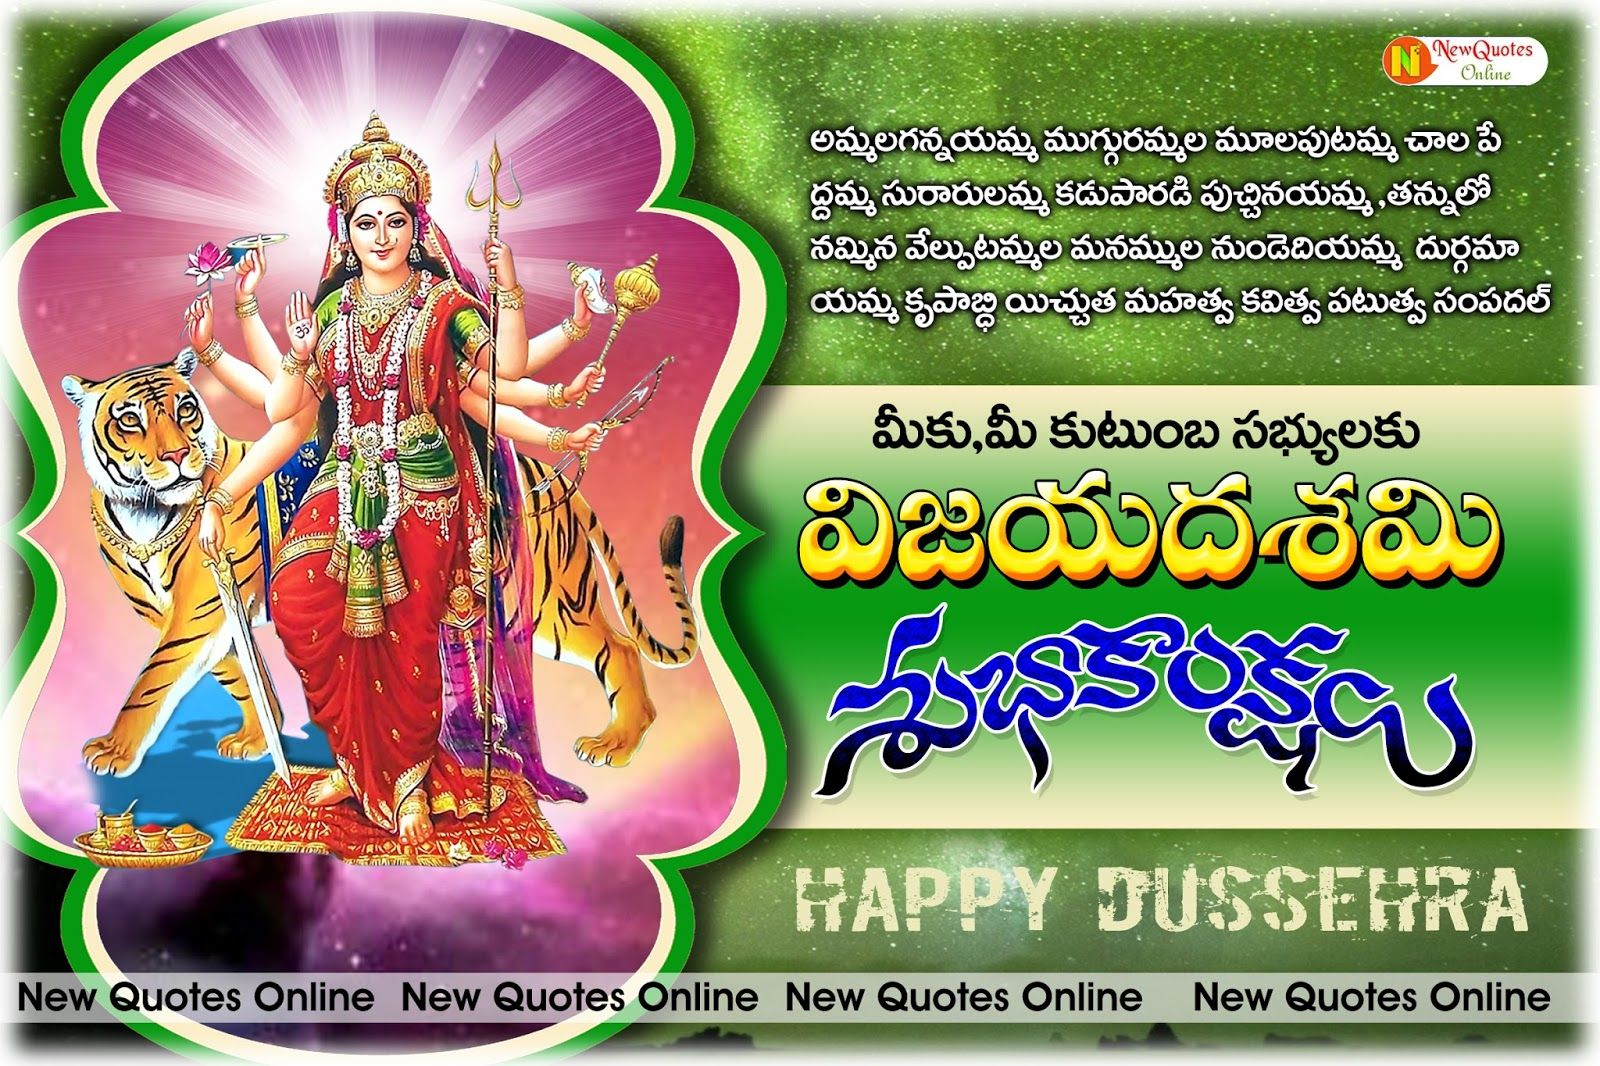 Best dasara greetings quotes in telugu happy vijaya dashami quotes best dasara greetings quotes in telugu happy vijaya dashami quotes wallpapers m4hsunfo